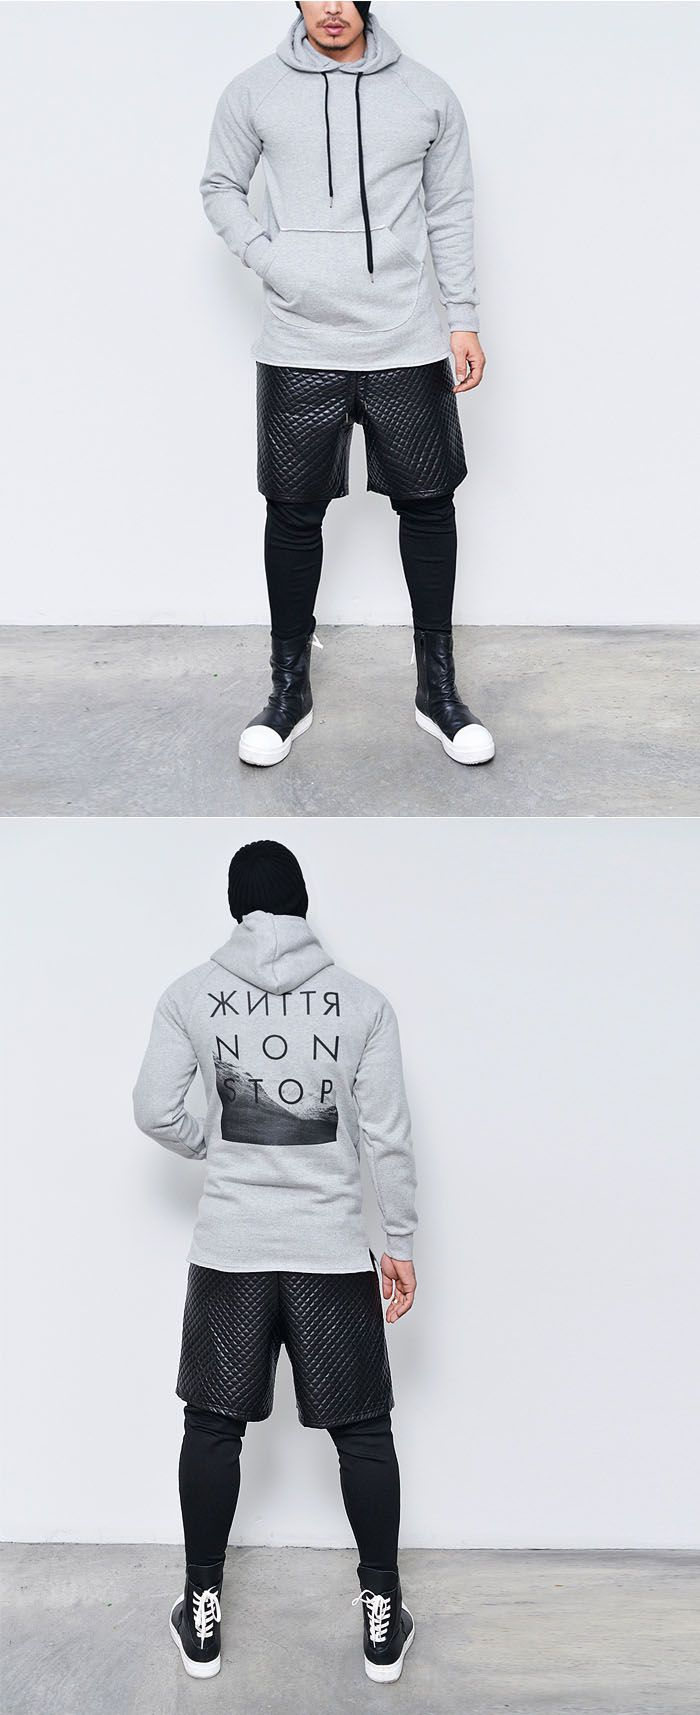 Bottoms :: Sweatpants :: Diamond Quilting Leggins Built-in Baggy-Sweatpants 154 - Mens Fashion Clothing For An Attractive Guy Look